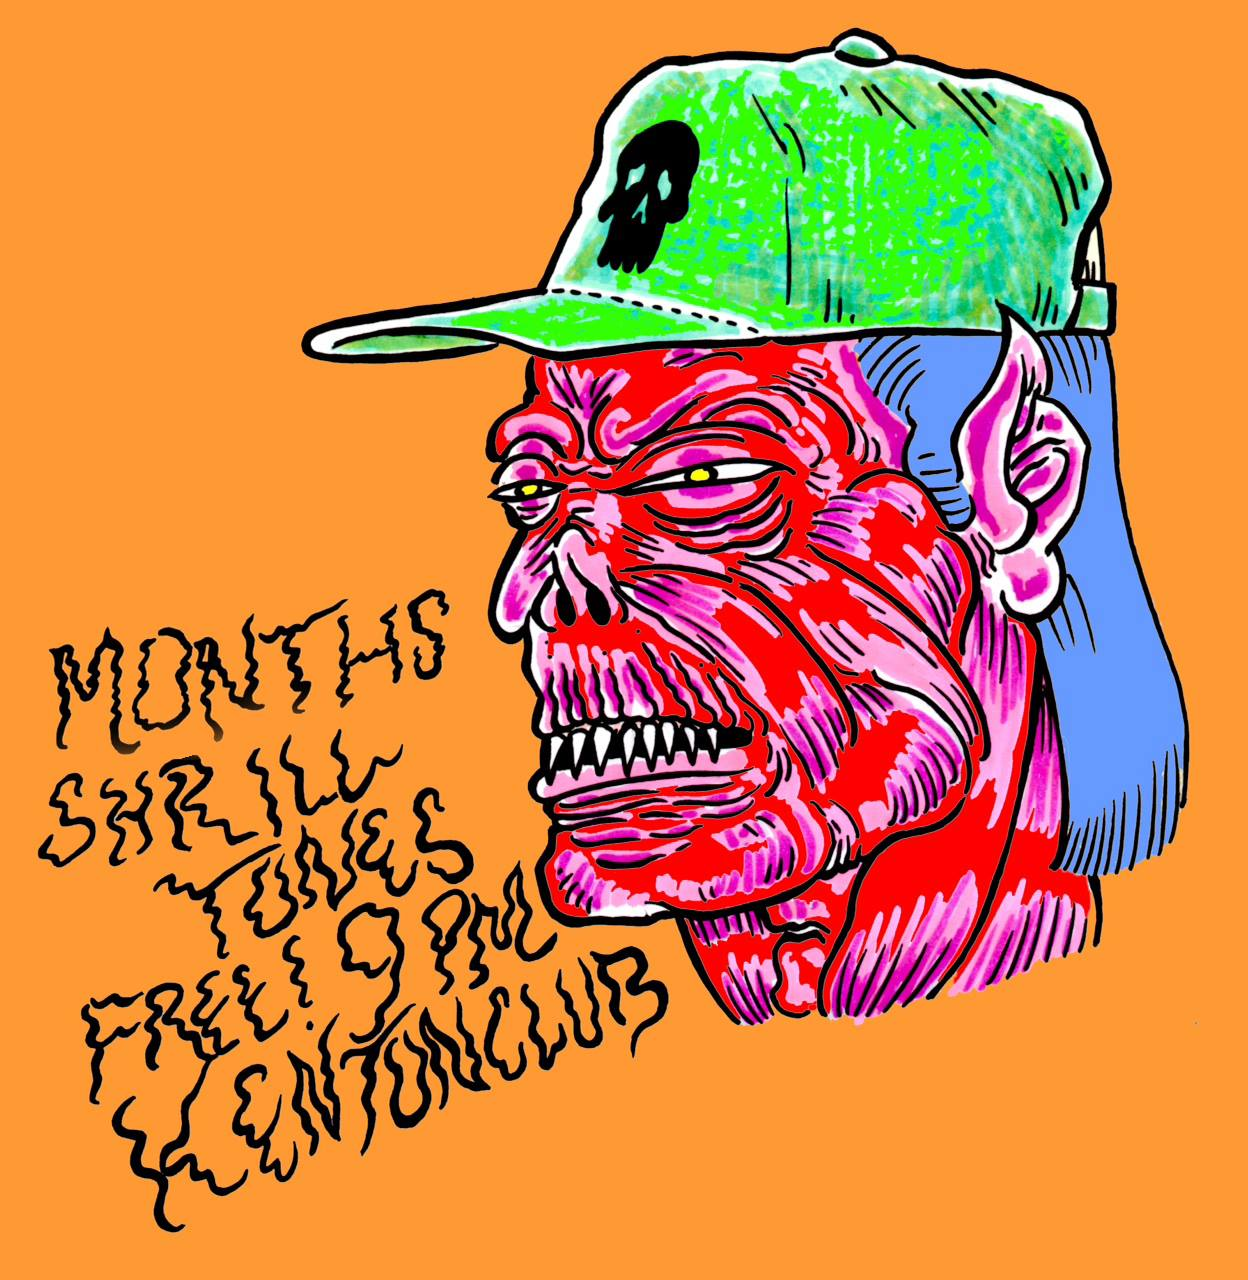 months and shrill tones march 3 at kenton club